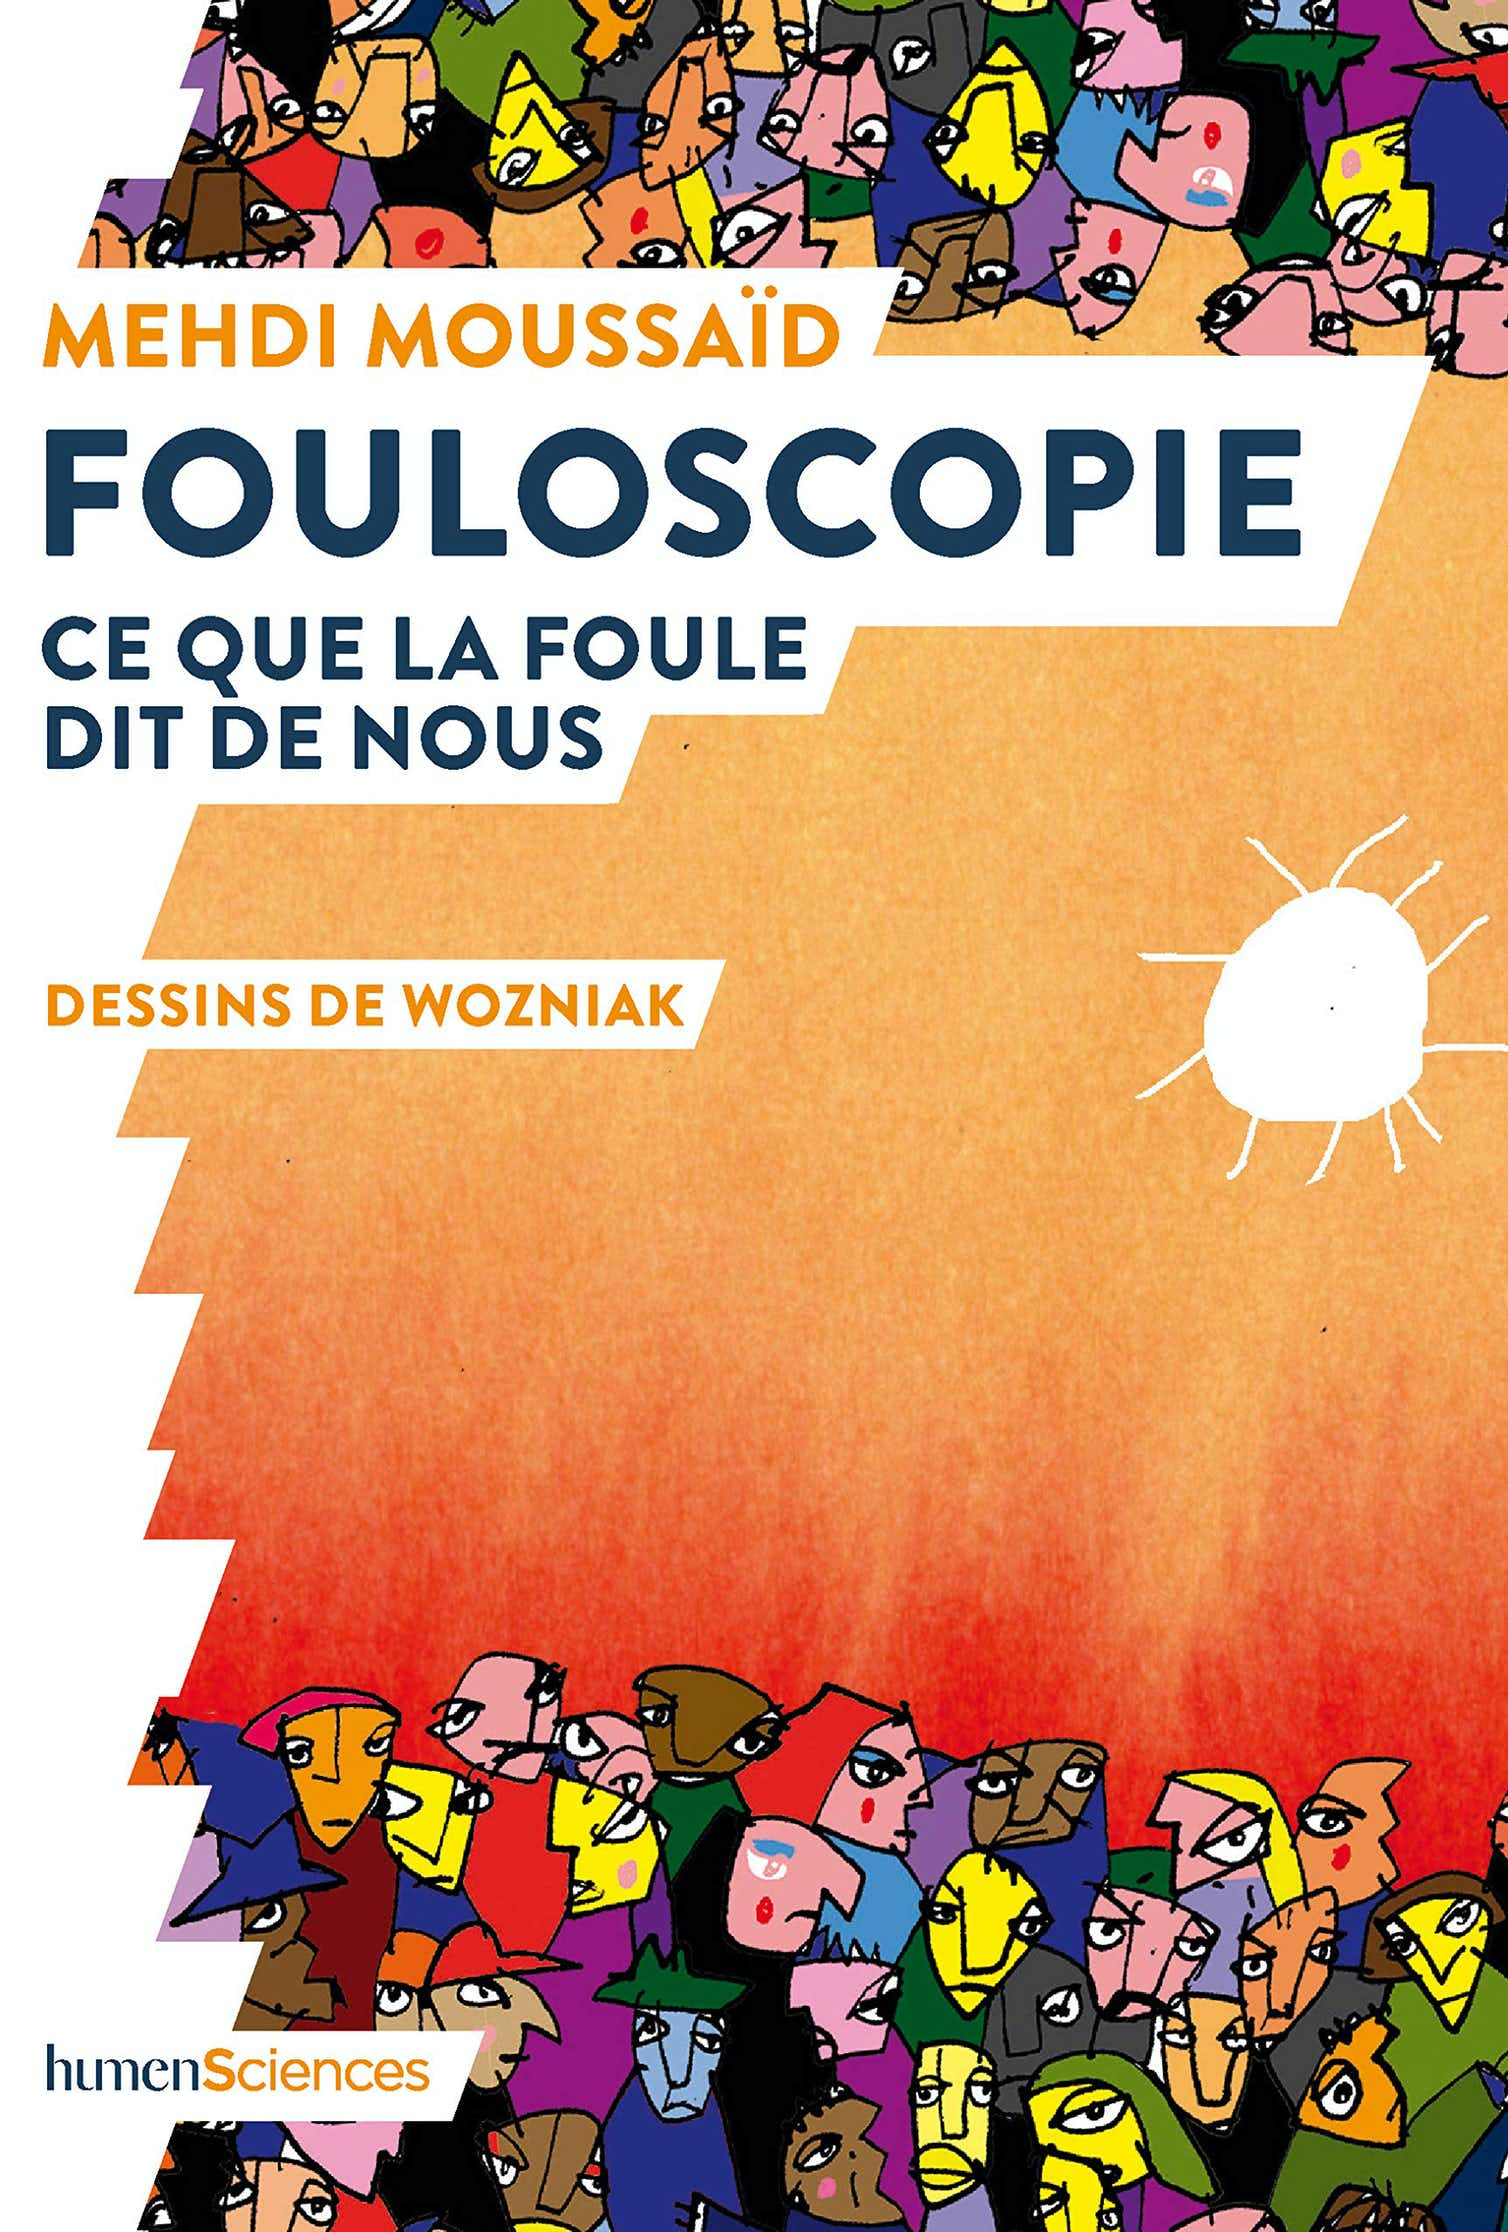 The author's book Fouloscopie examines the behaviour of crowds. Credit: Humensciences, Author provided